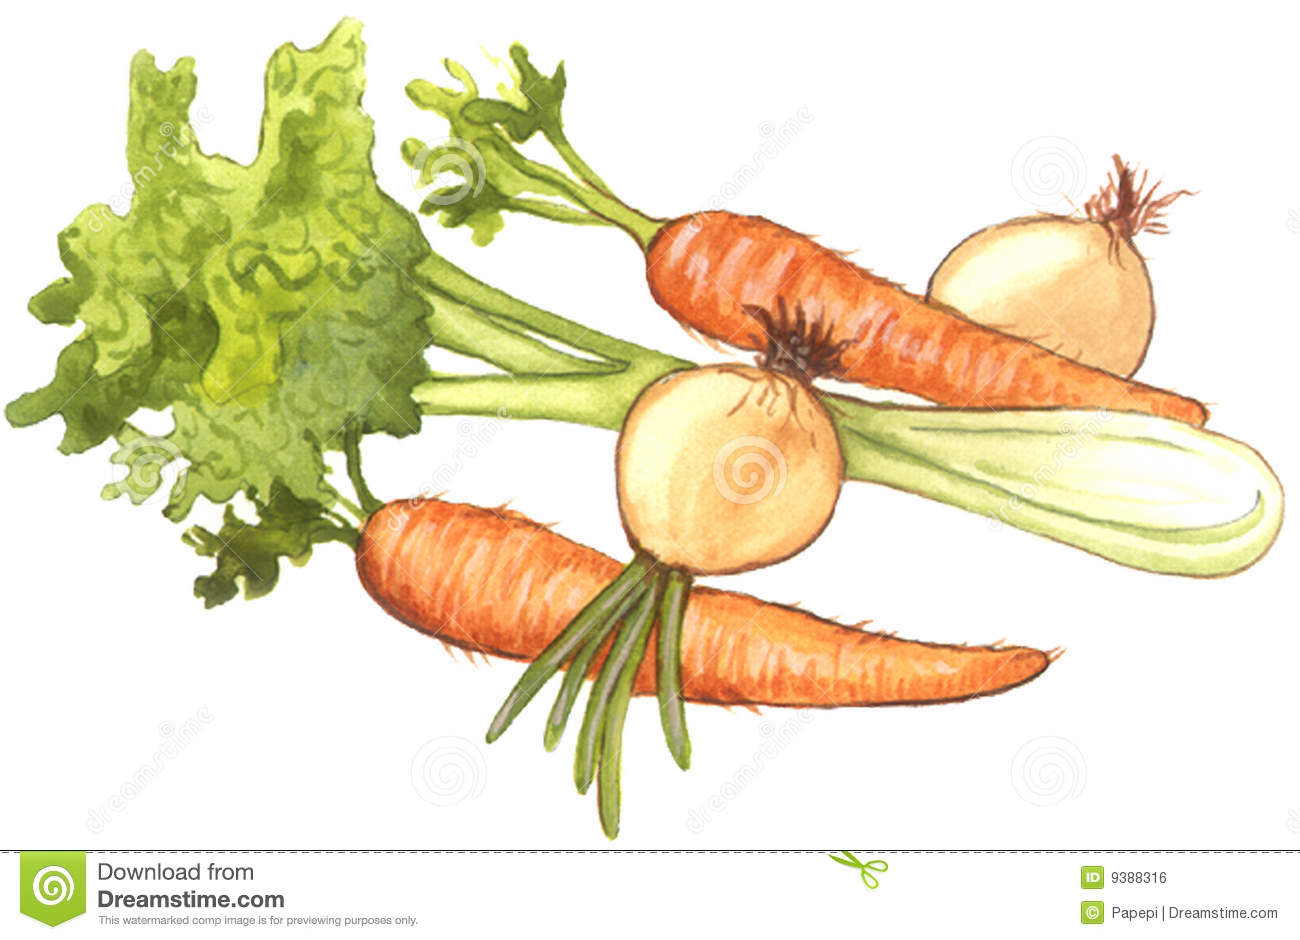 Celeryonions And Carrots Royalty Free Stock Image   Image  9388316